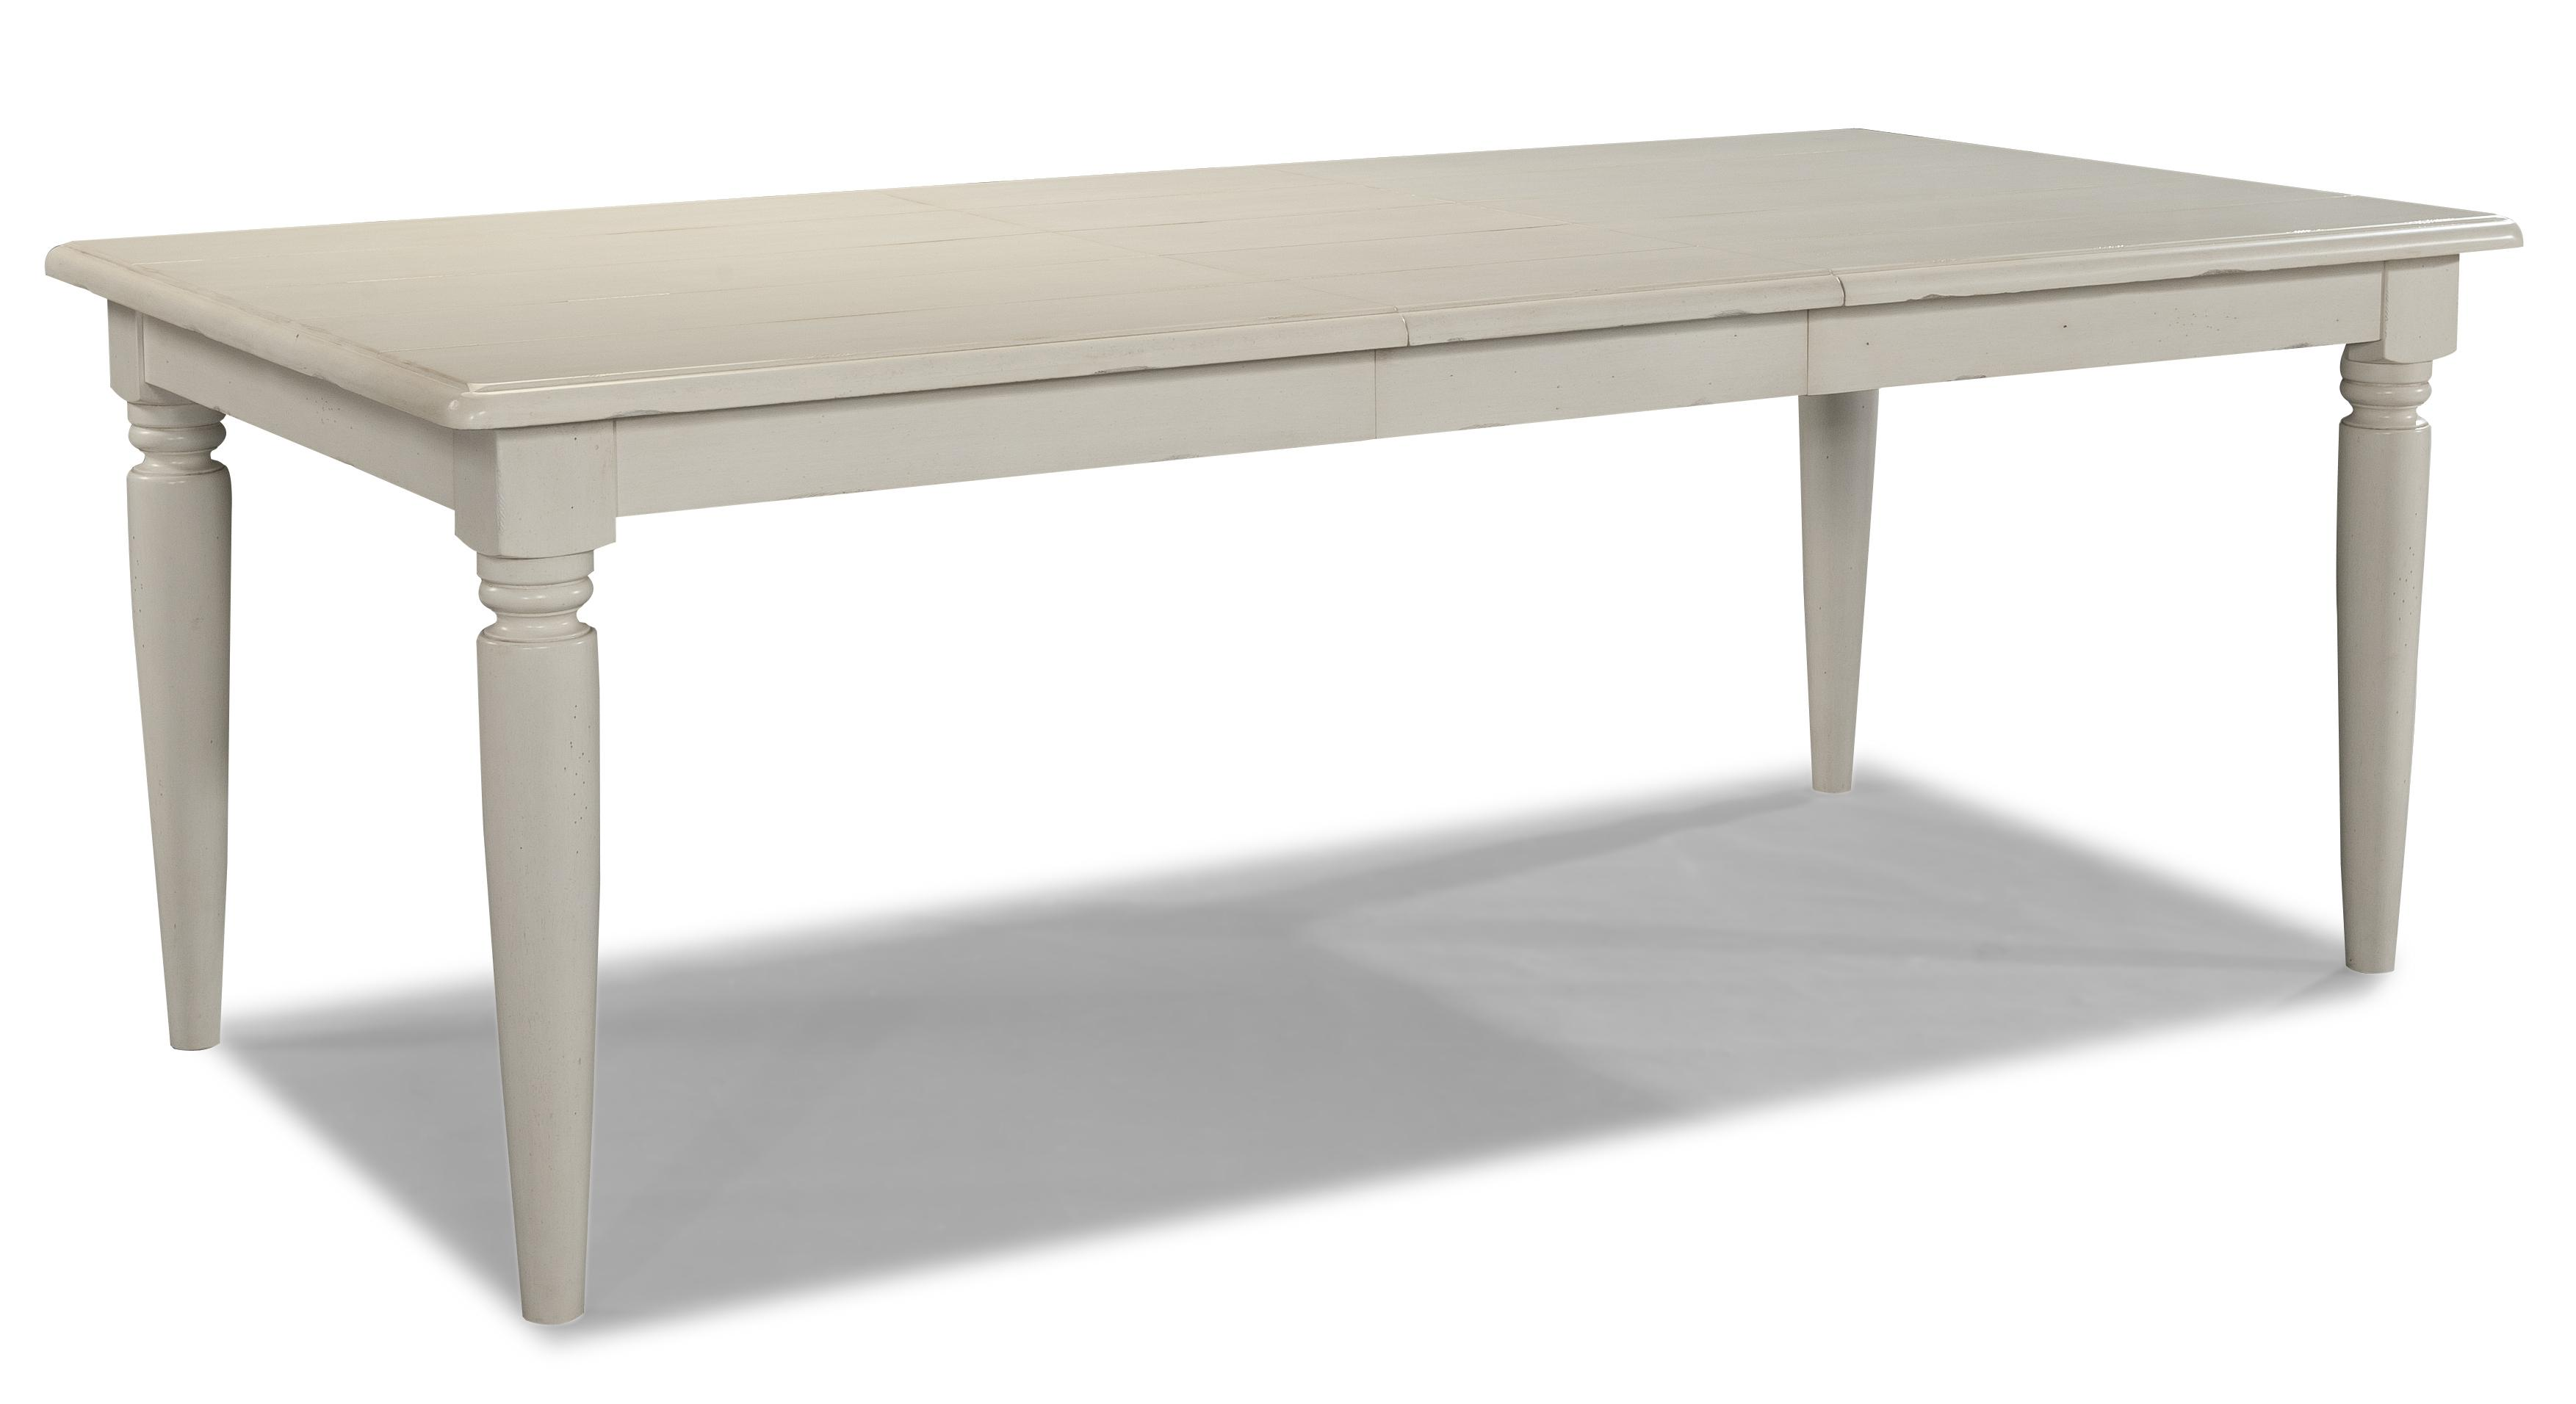 Easton Collection Sea Breeze 84'' Rectangular Table - Item Number: 424-084 DRT